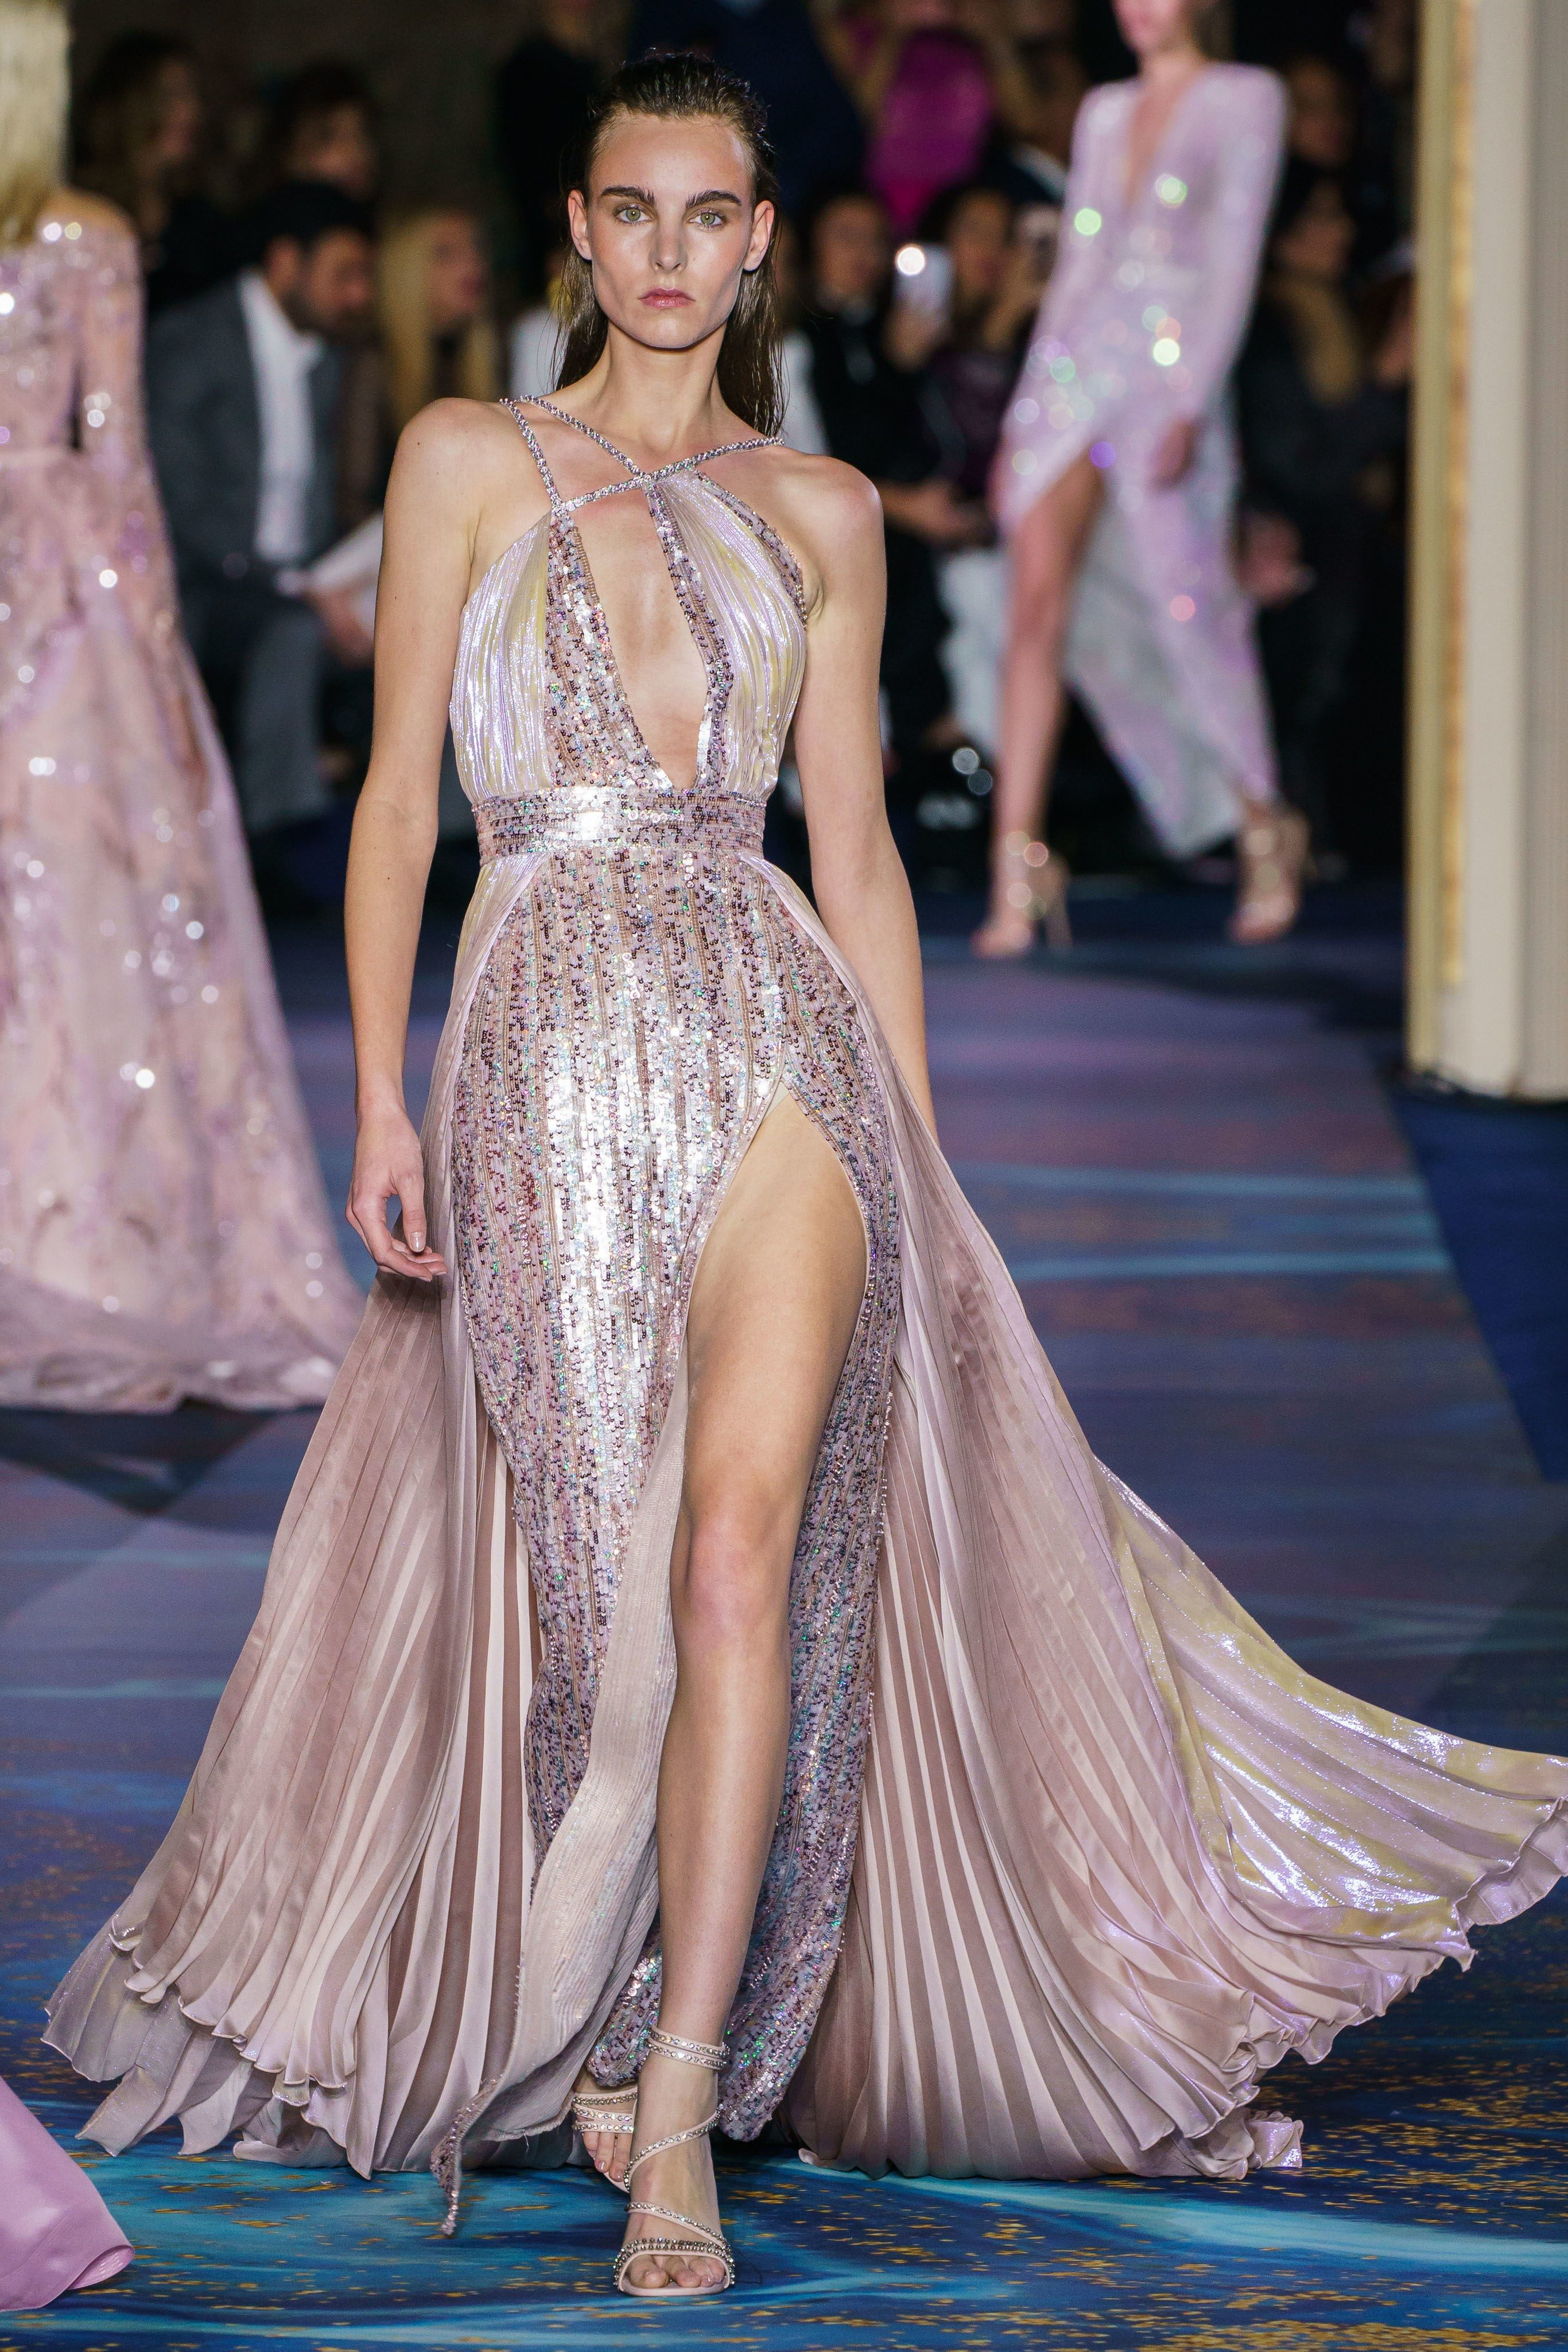 eb84ed8a31c Zuhair Murad Spring 2019 Couture Fashion Show in 2019